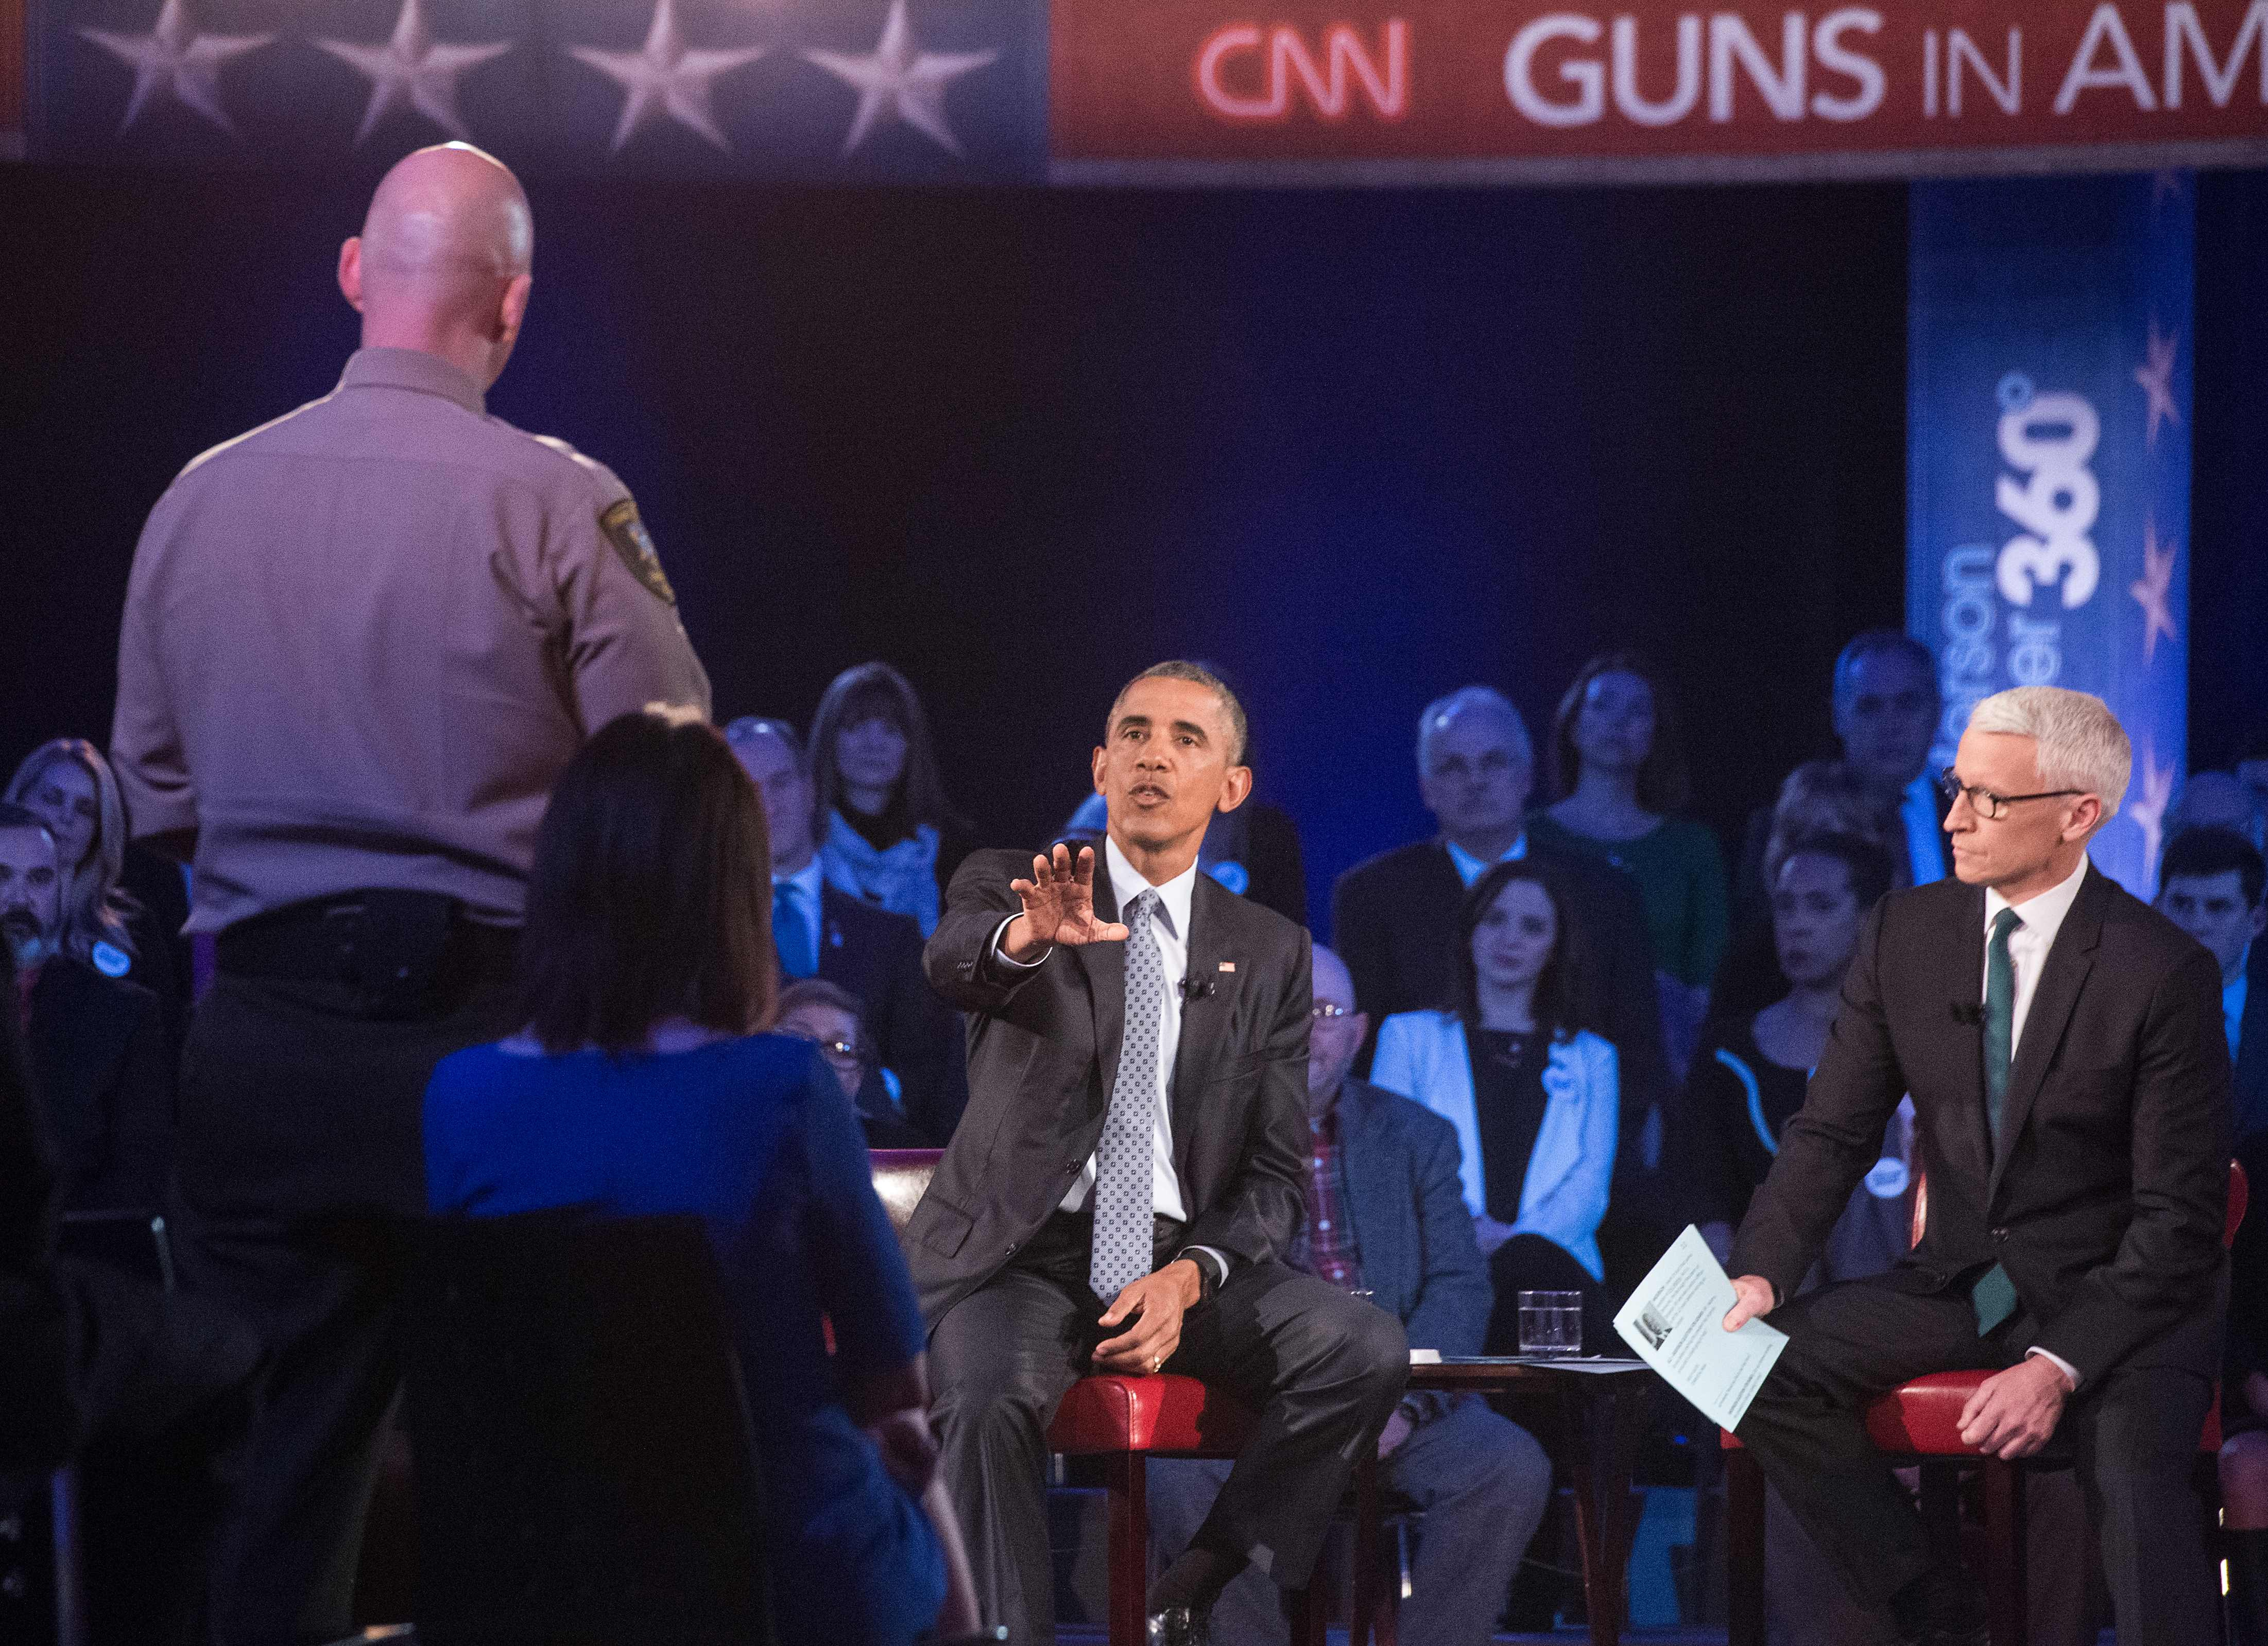 President Barack Obama replies to a question by Arizona Sheriff Paul Babeu (L) at a town hall meeting with CNN's Anderson Cooper (R) on reducing gun violence at George Mason University in Fairfax, Virginia, on January 7, 2016.